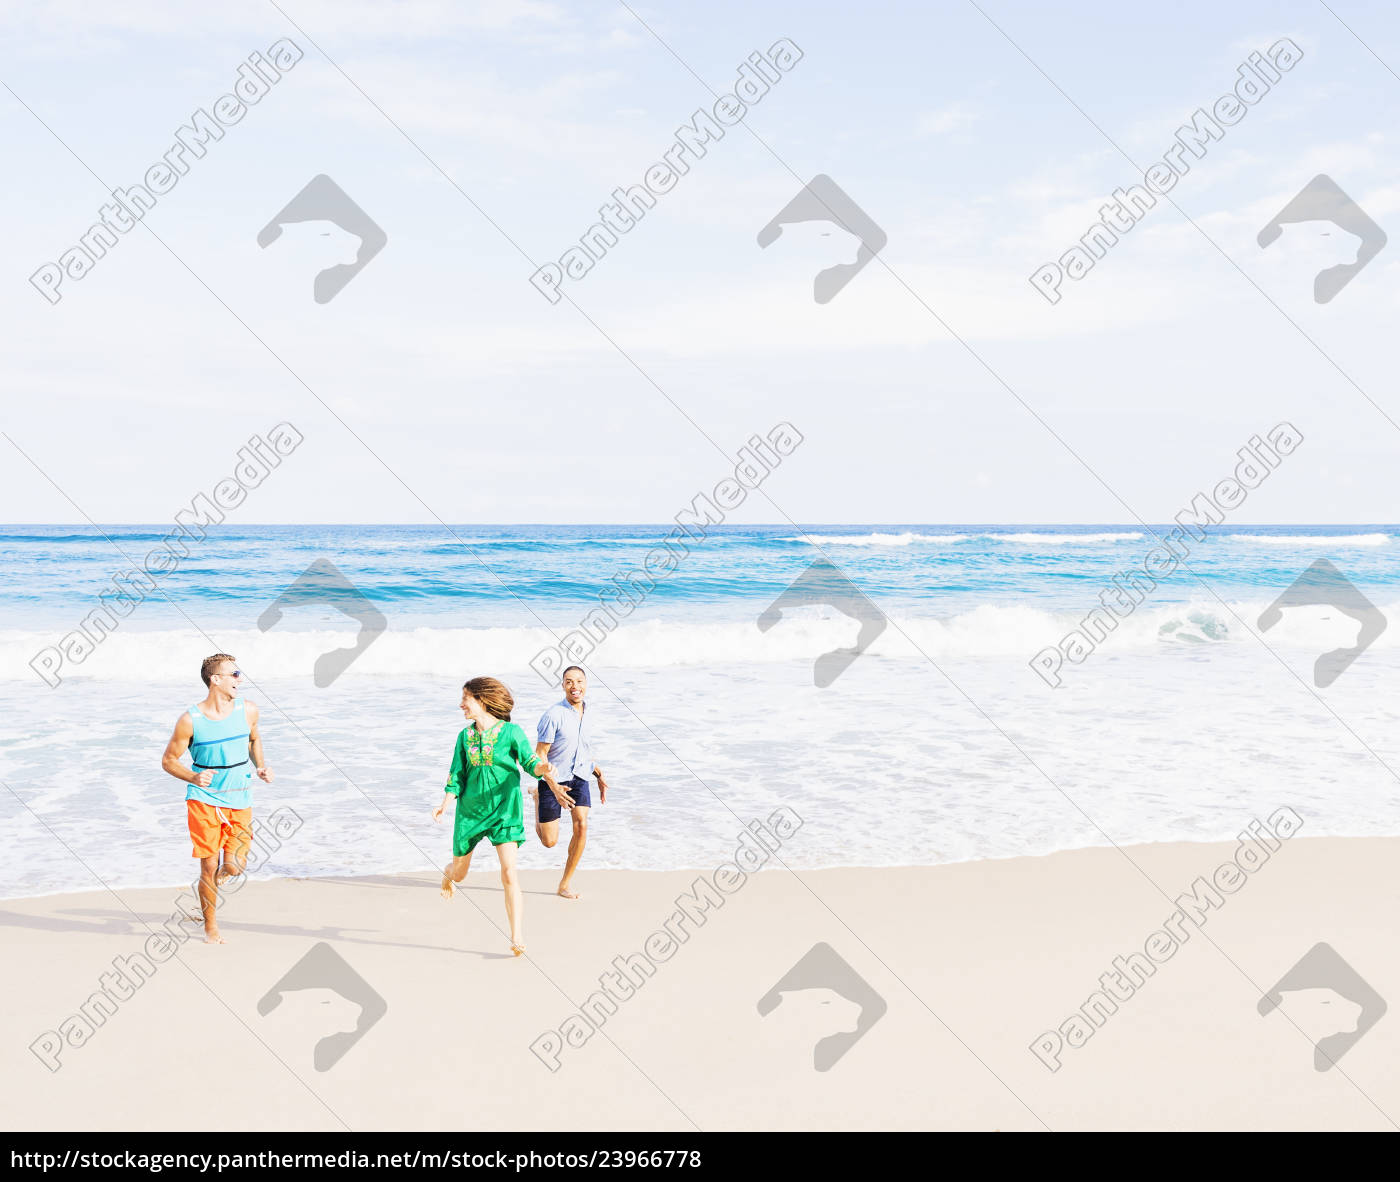 young, people, running, on, beach - 23966778